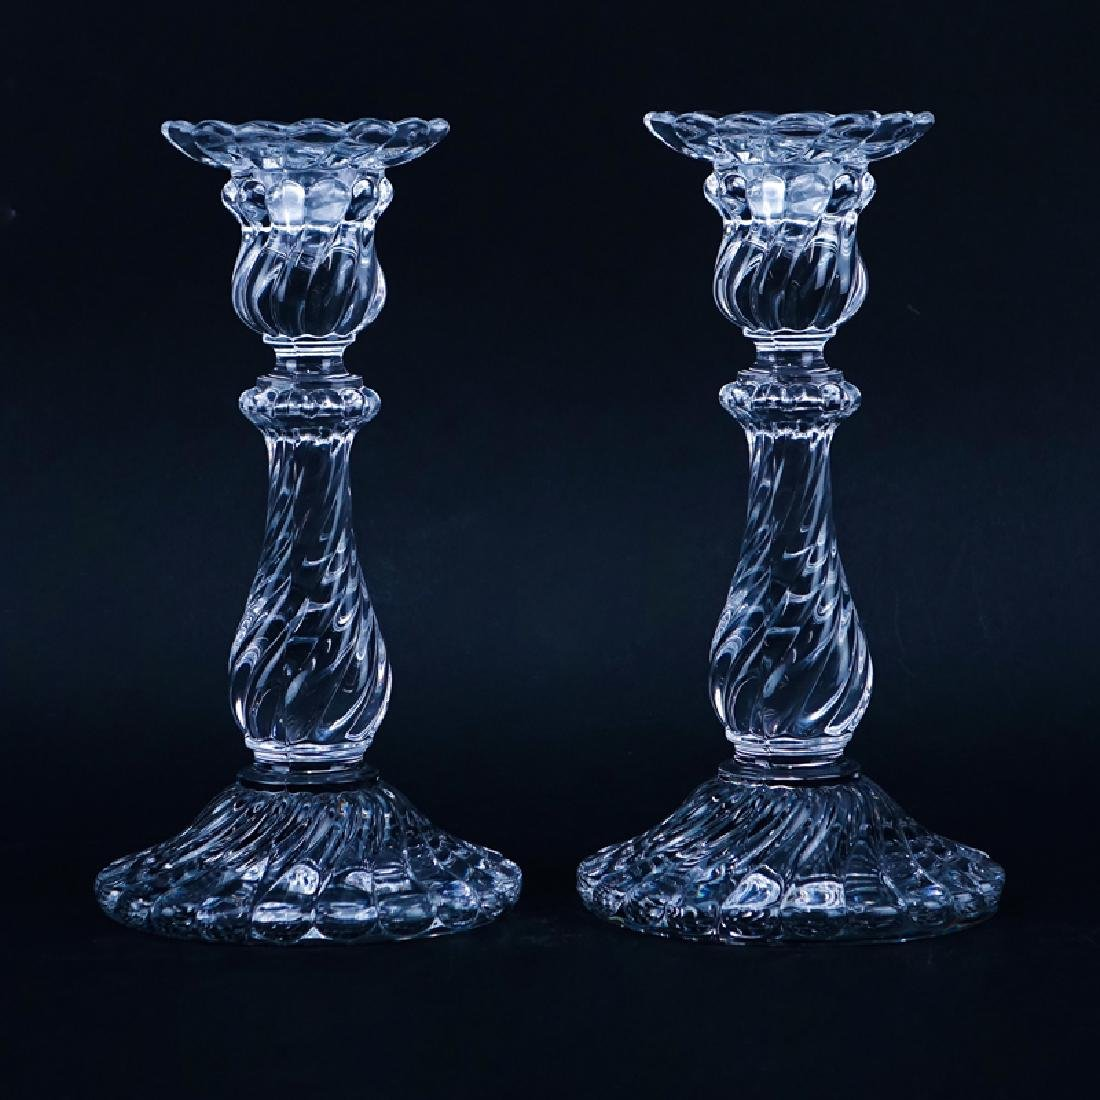 Pair of Baccarat Crystal Candlesticks. Signed. Good